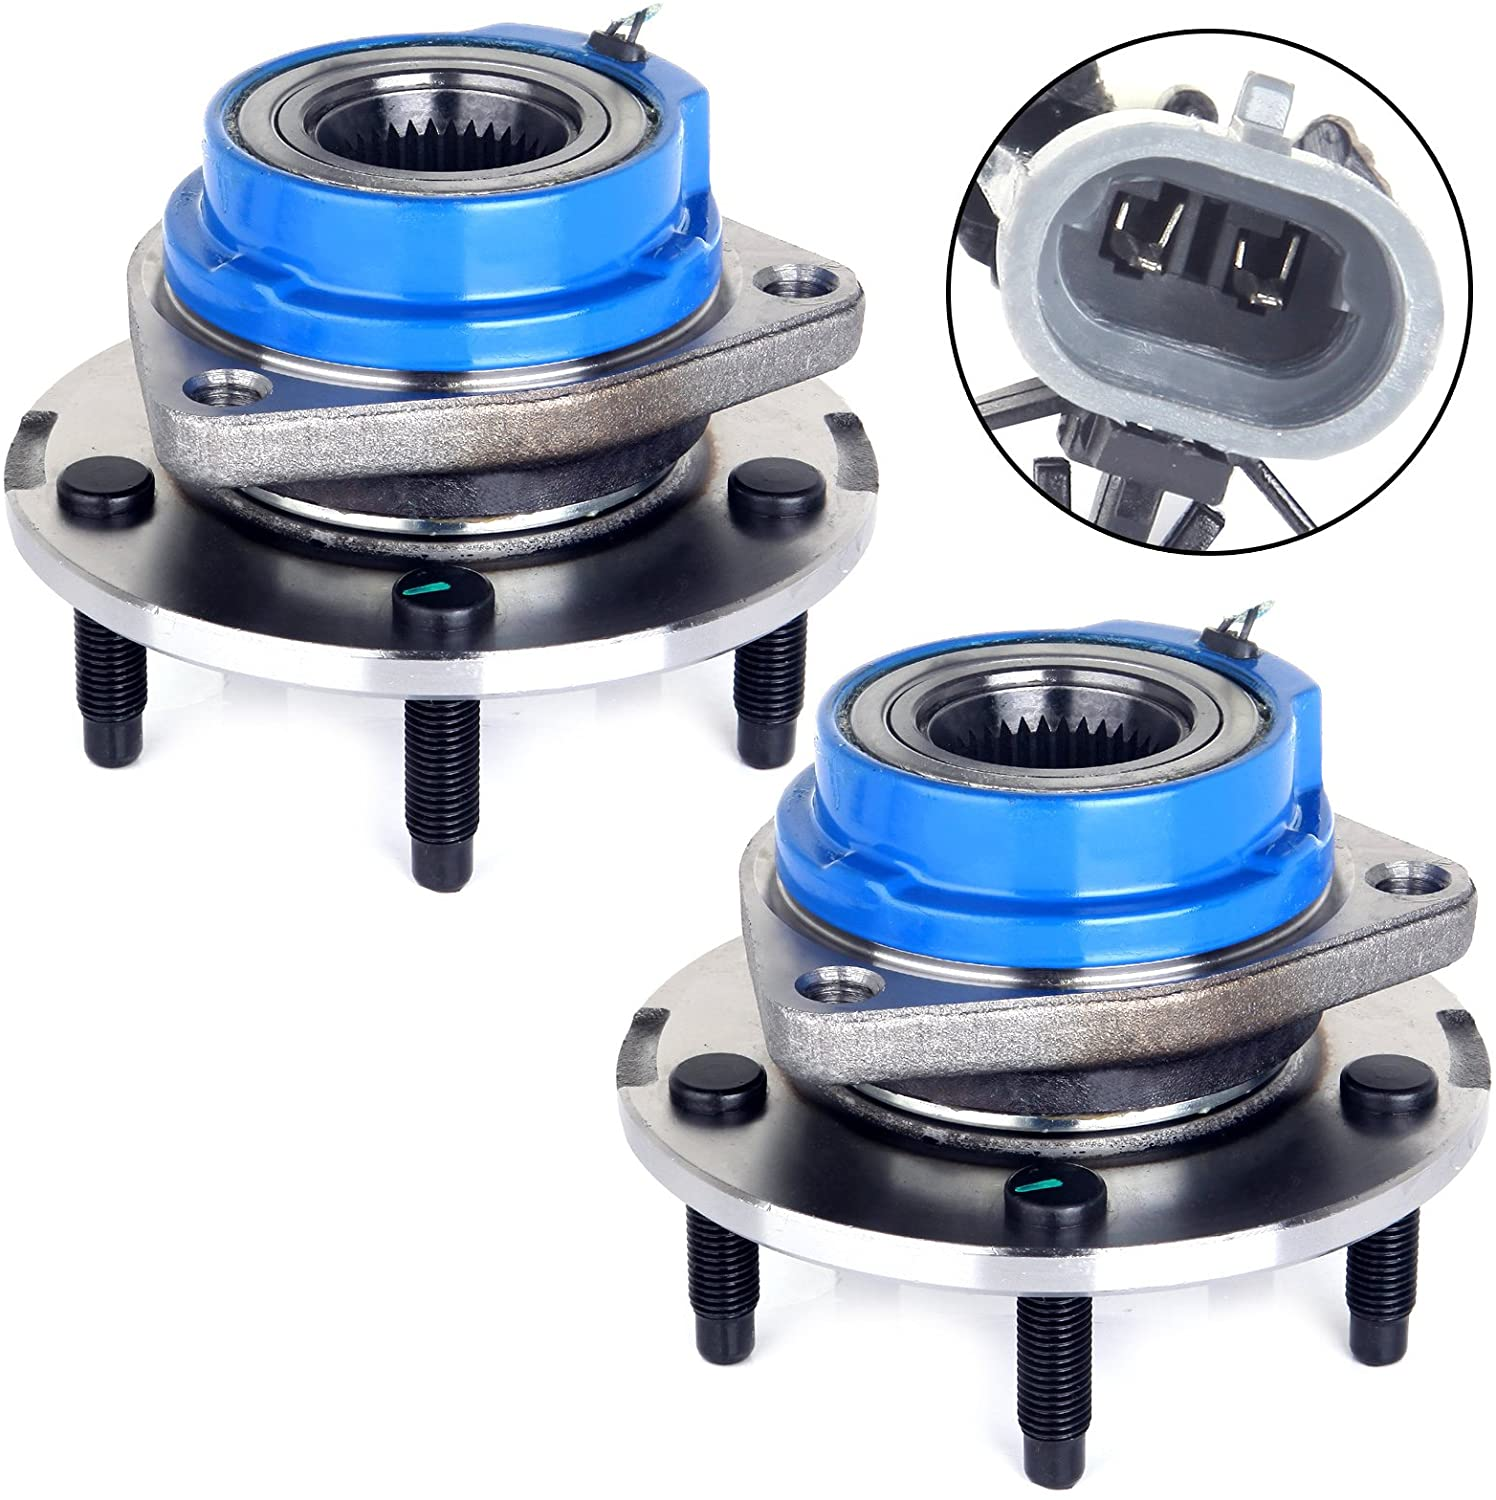 ECCPP 513179 Front Wheel Hub and Bearing Assembly C hevy Impala Venture Monte Carlo, Century Regal, C adillac Seville,O ldsmobile Intrigue,P ontiac Grand Prix FWD 5 Lugs ABS Left & Right